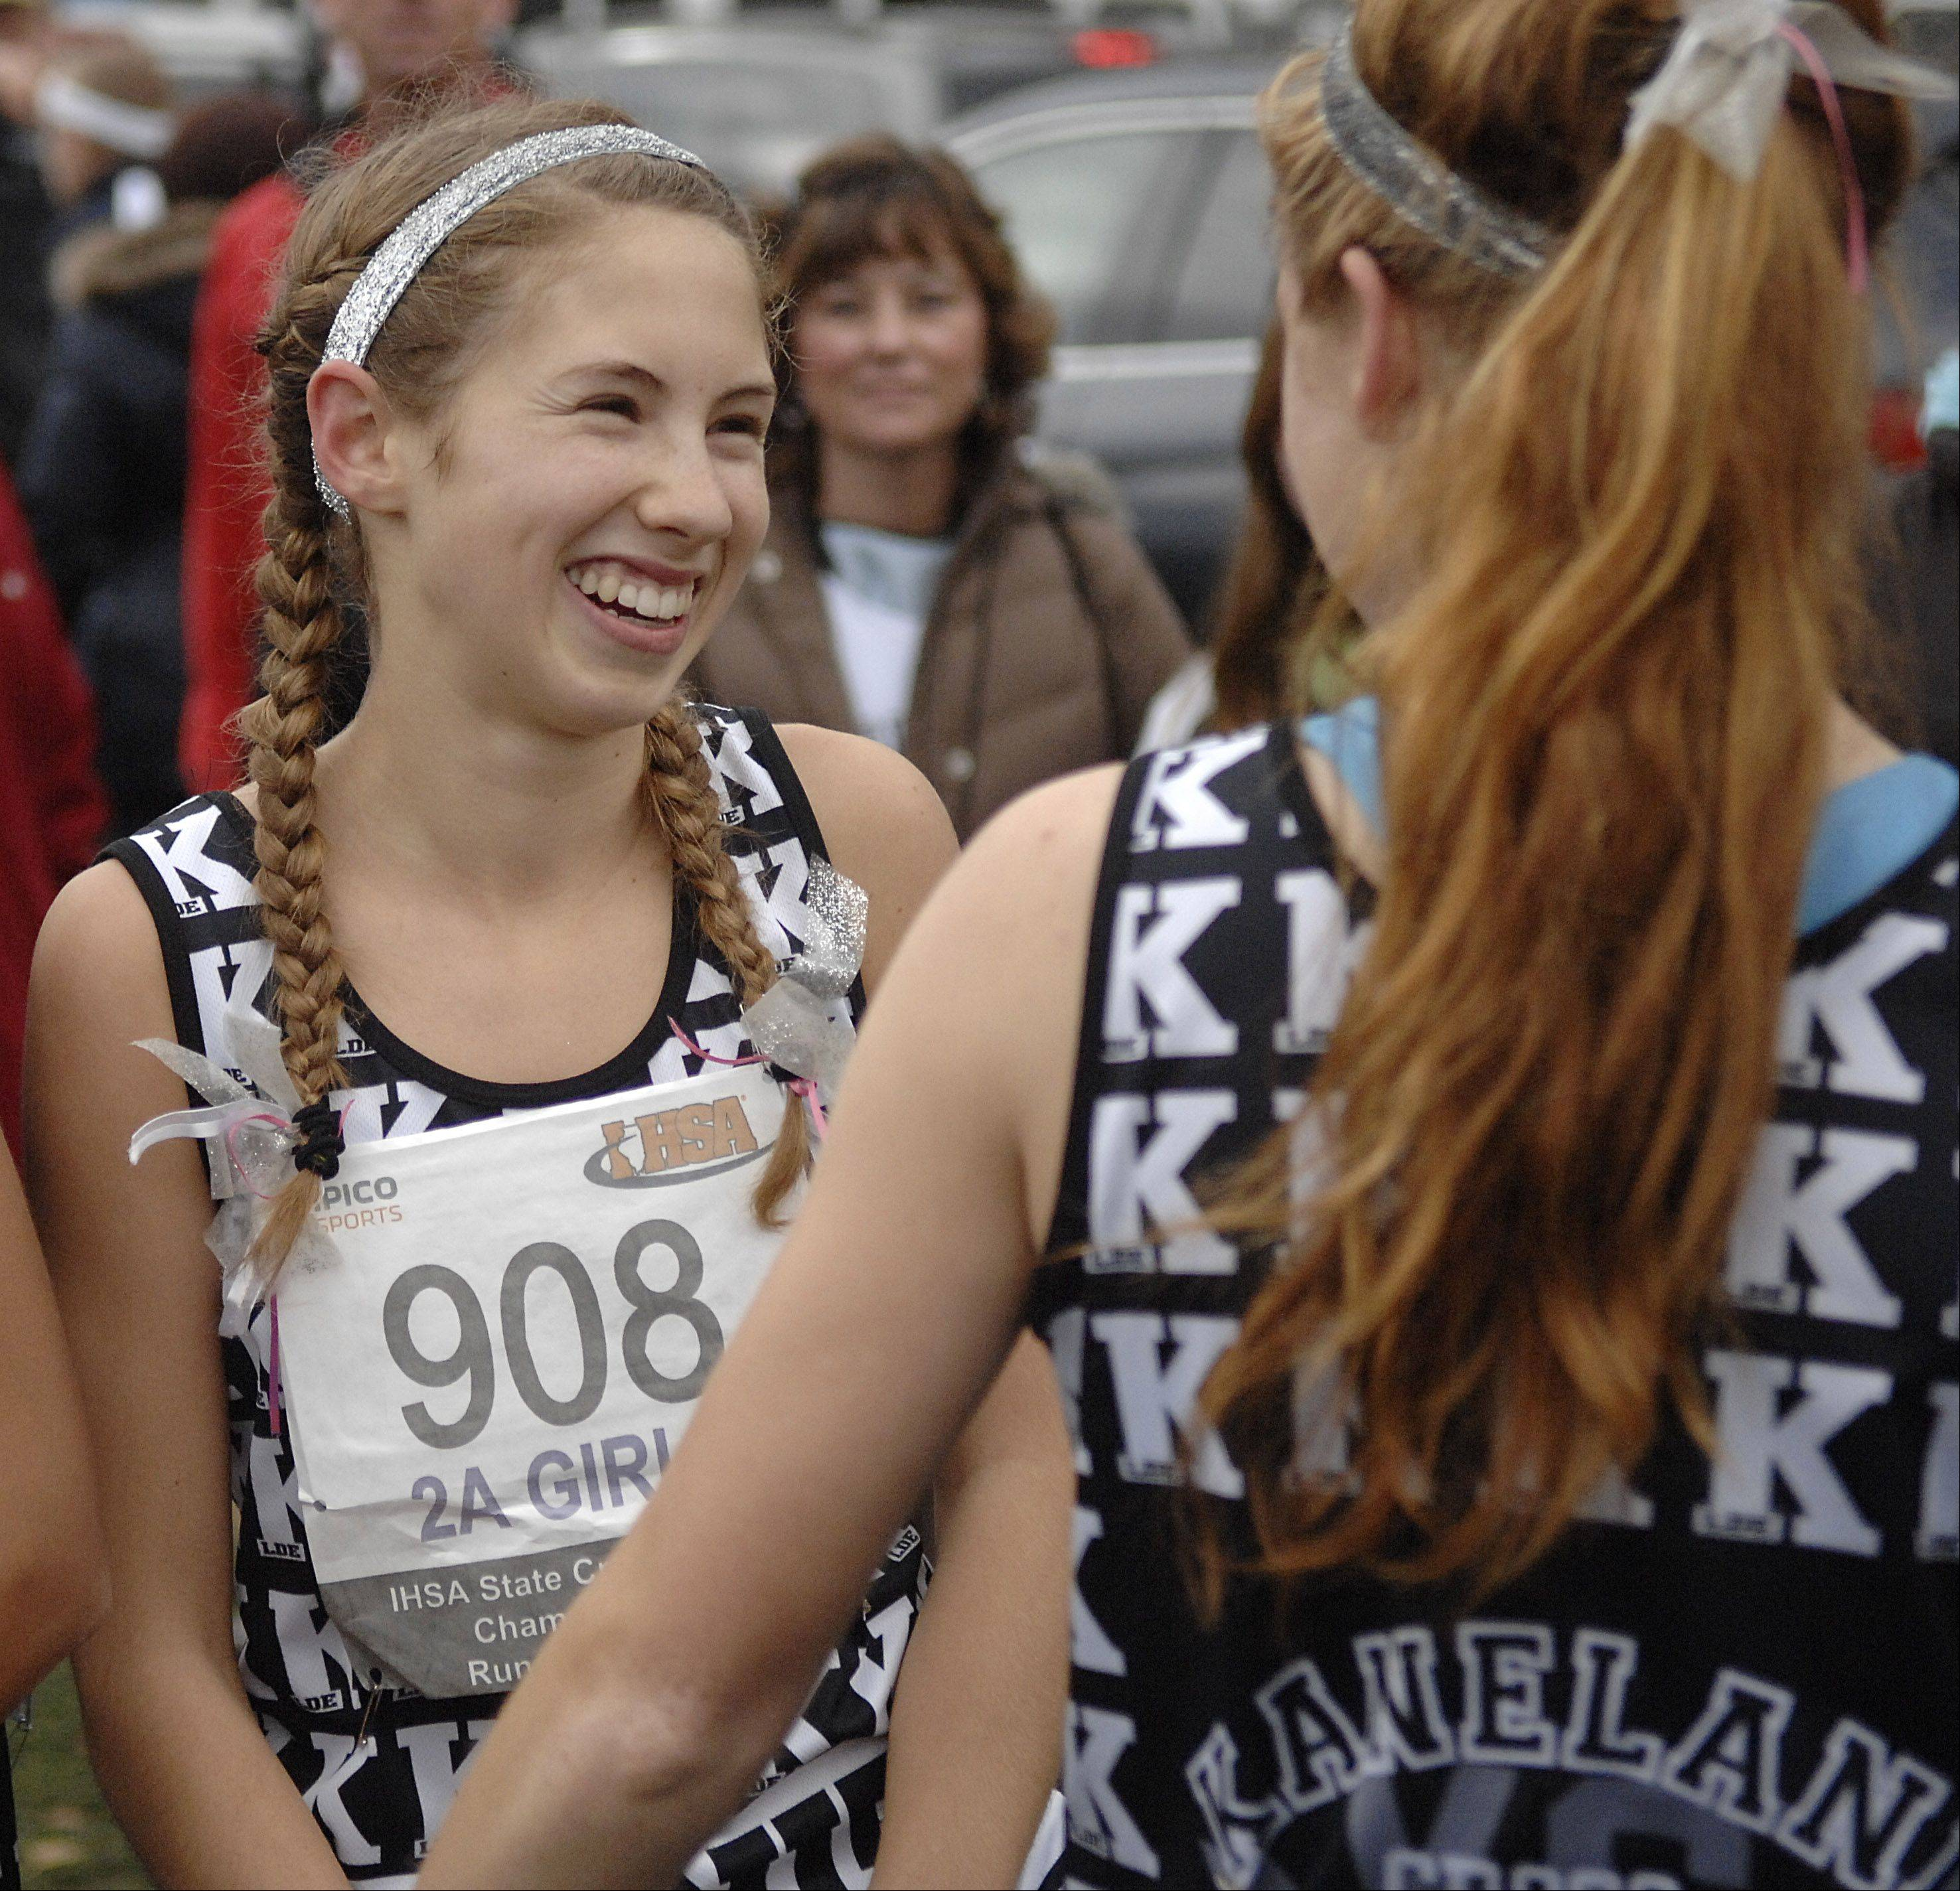 Laura Stoecker/lstoecker@dailyherald.com Kaneland's Victoria Clinton is congratulated by teammate Aislinn Losdwig after winning the 2A state cross country final in Peoria on Saturday, November 3.